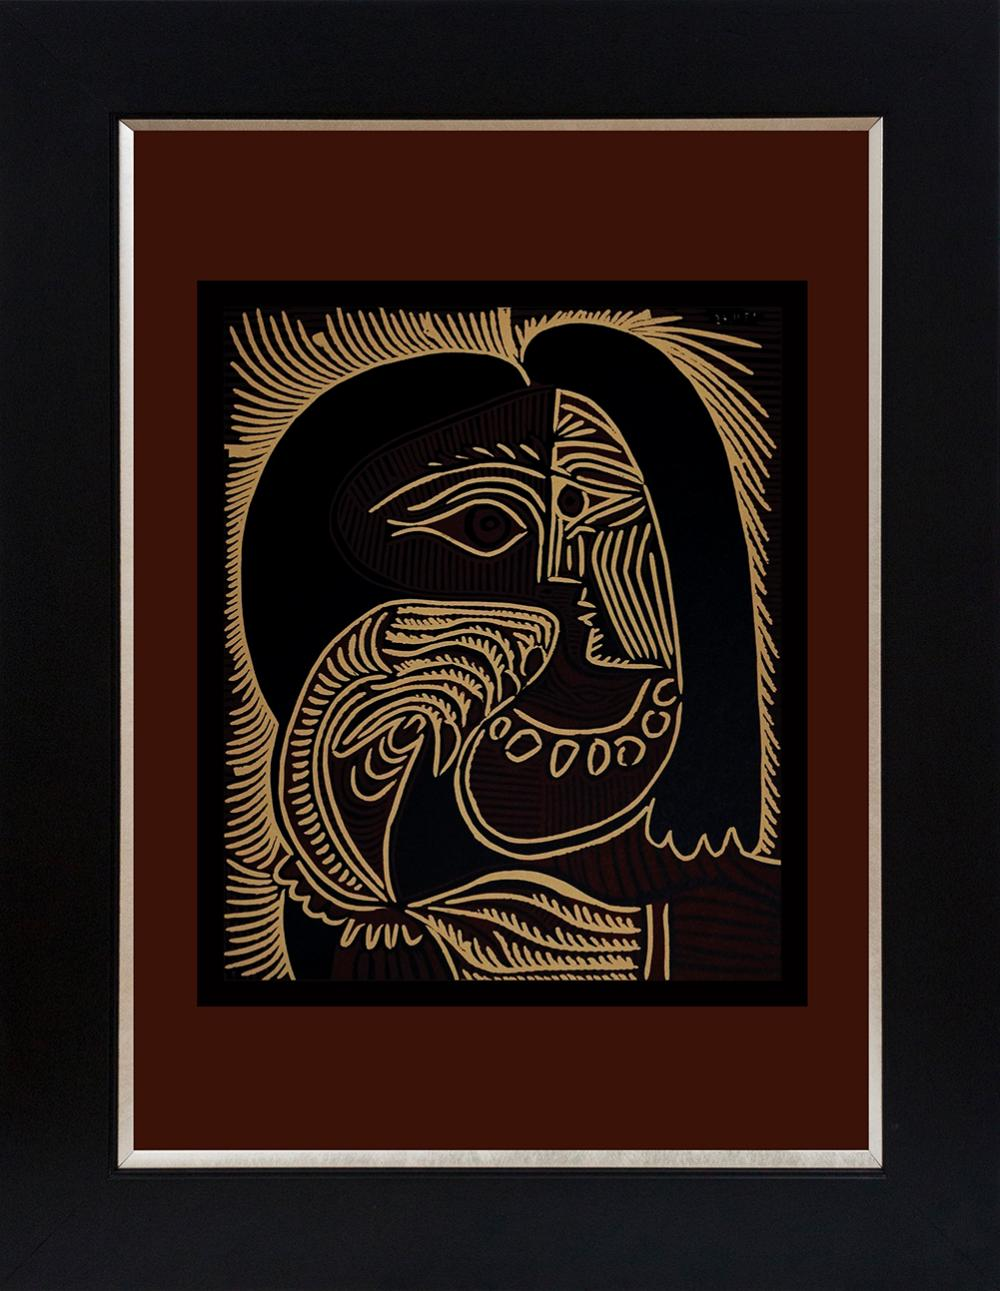 Lot 4831: Pablo Picasso Linocut from 1961